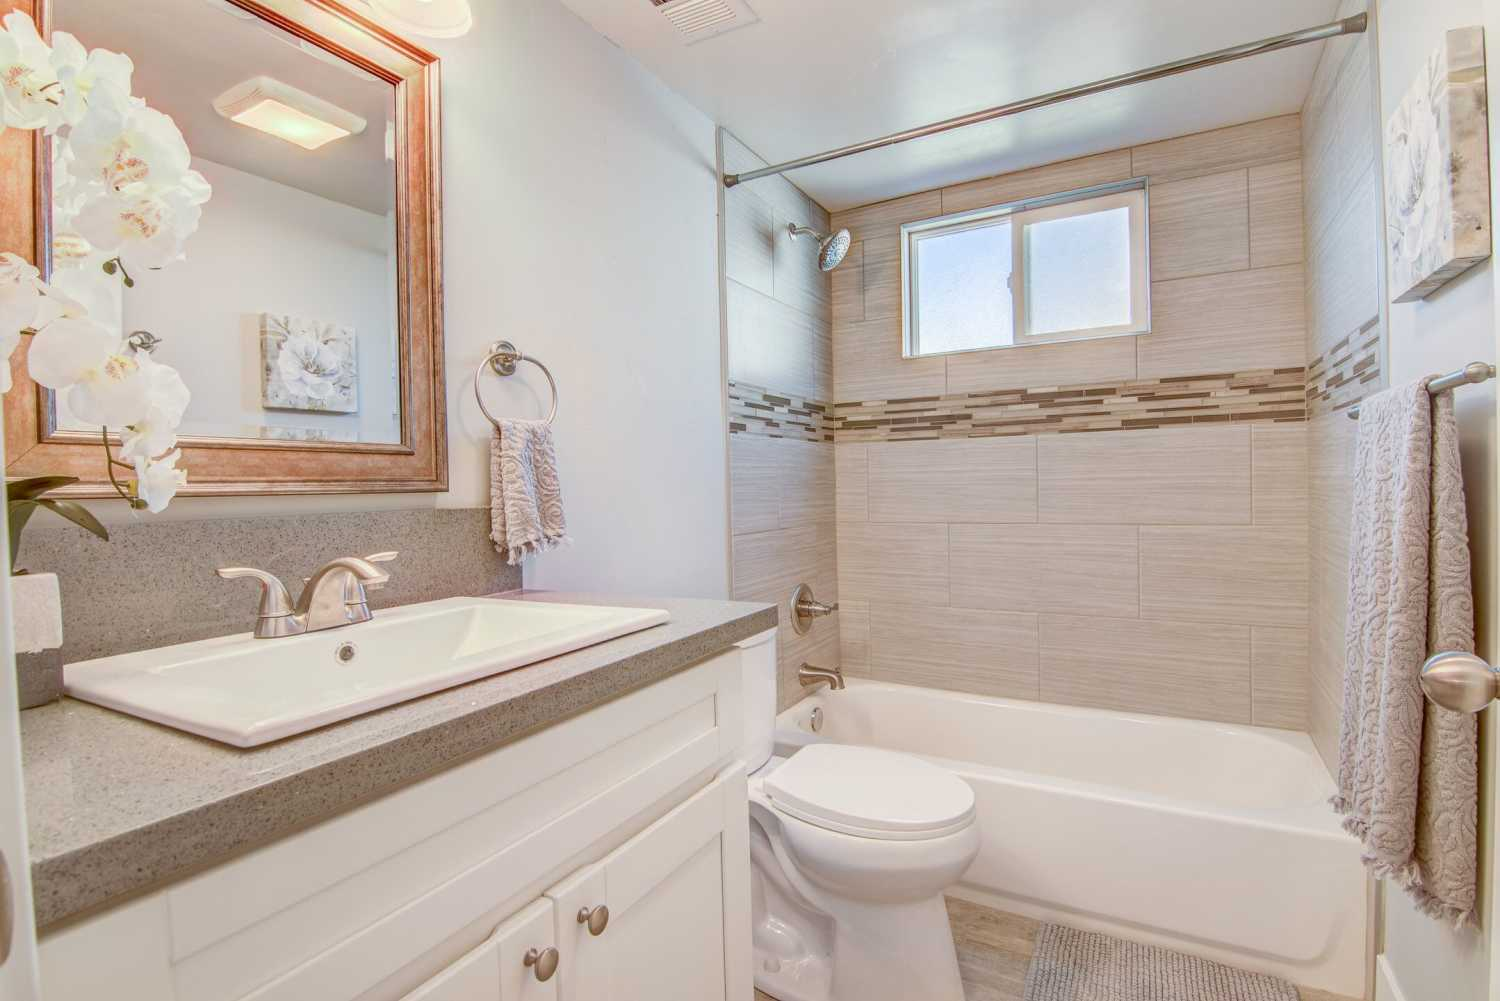 8 Reasons To Invest In A Master Bathroom Remodel